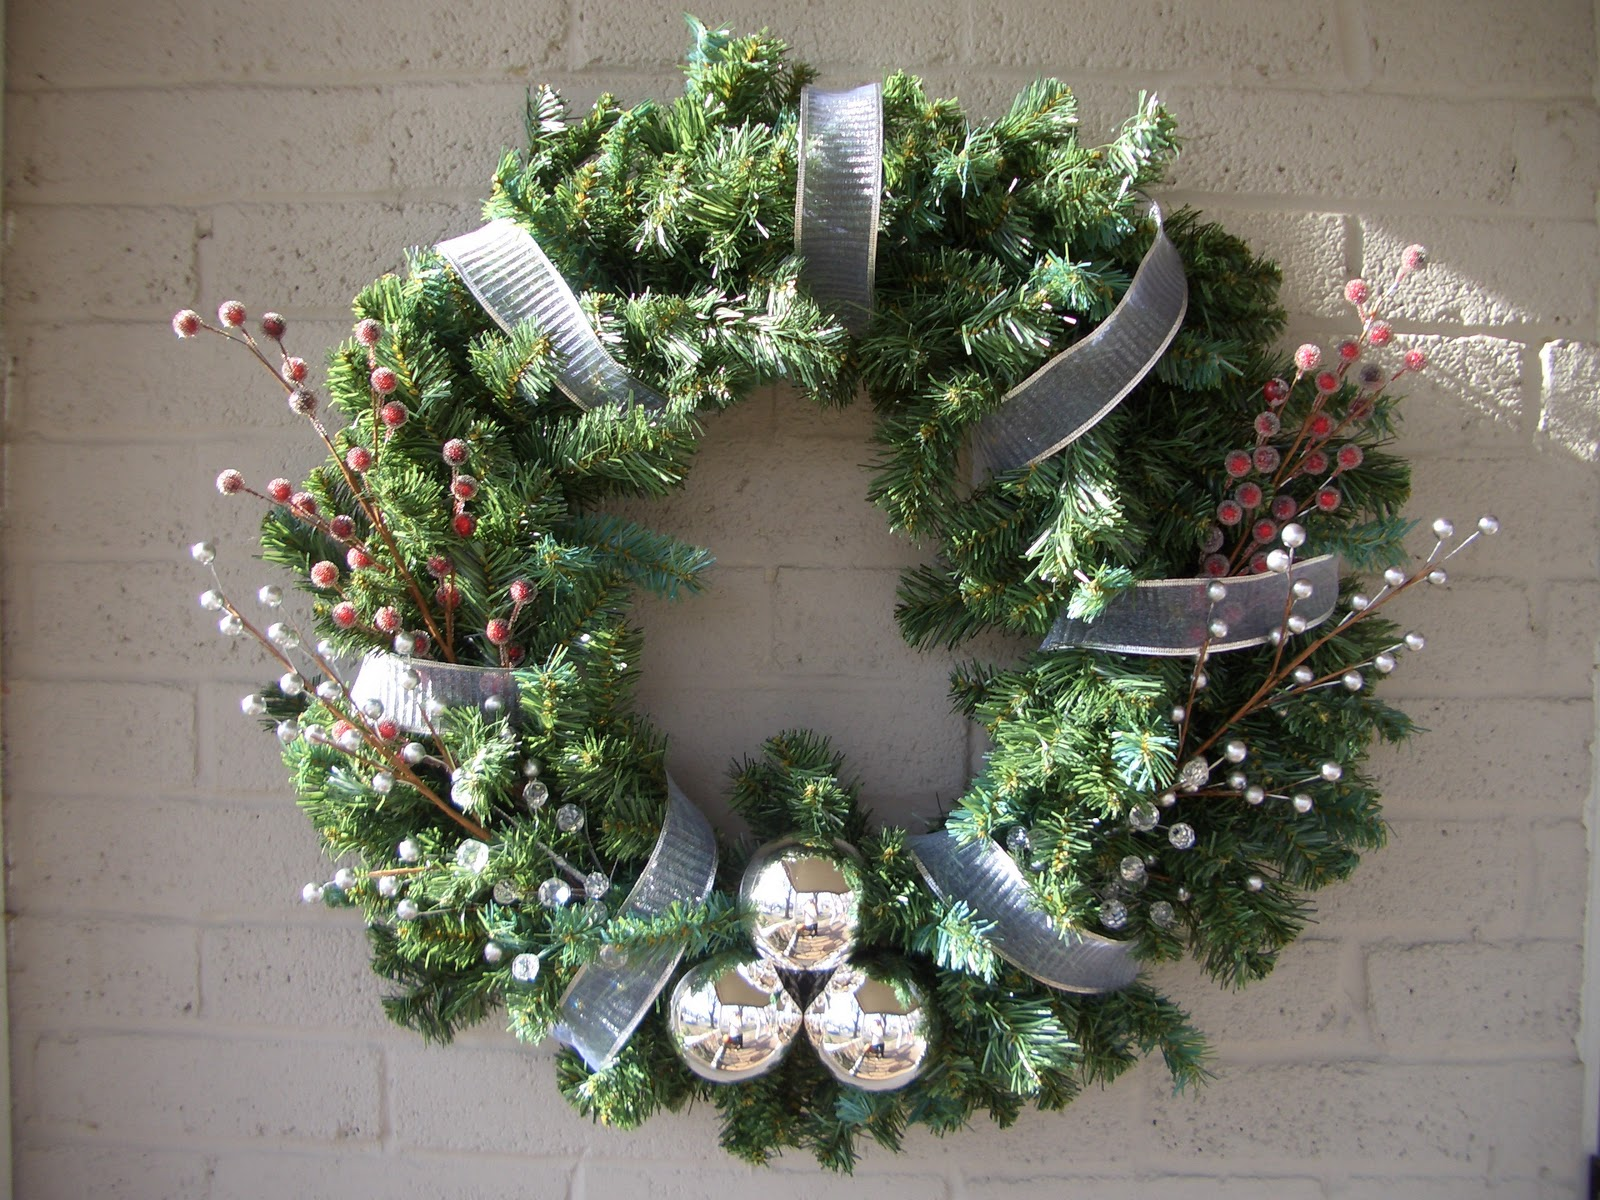 Cool home creations christmas decor 2010 greenery wreath - Deco de noel naturelle ...